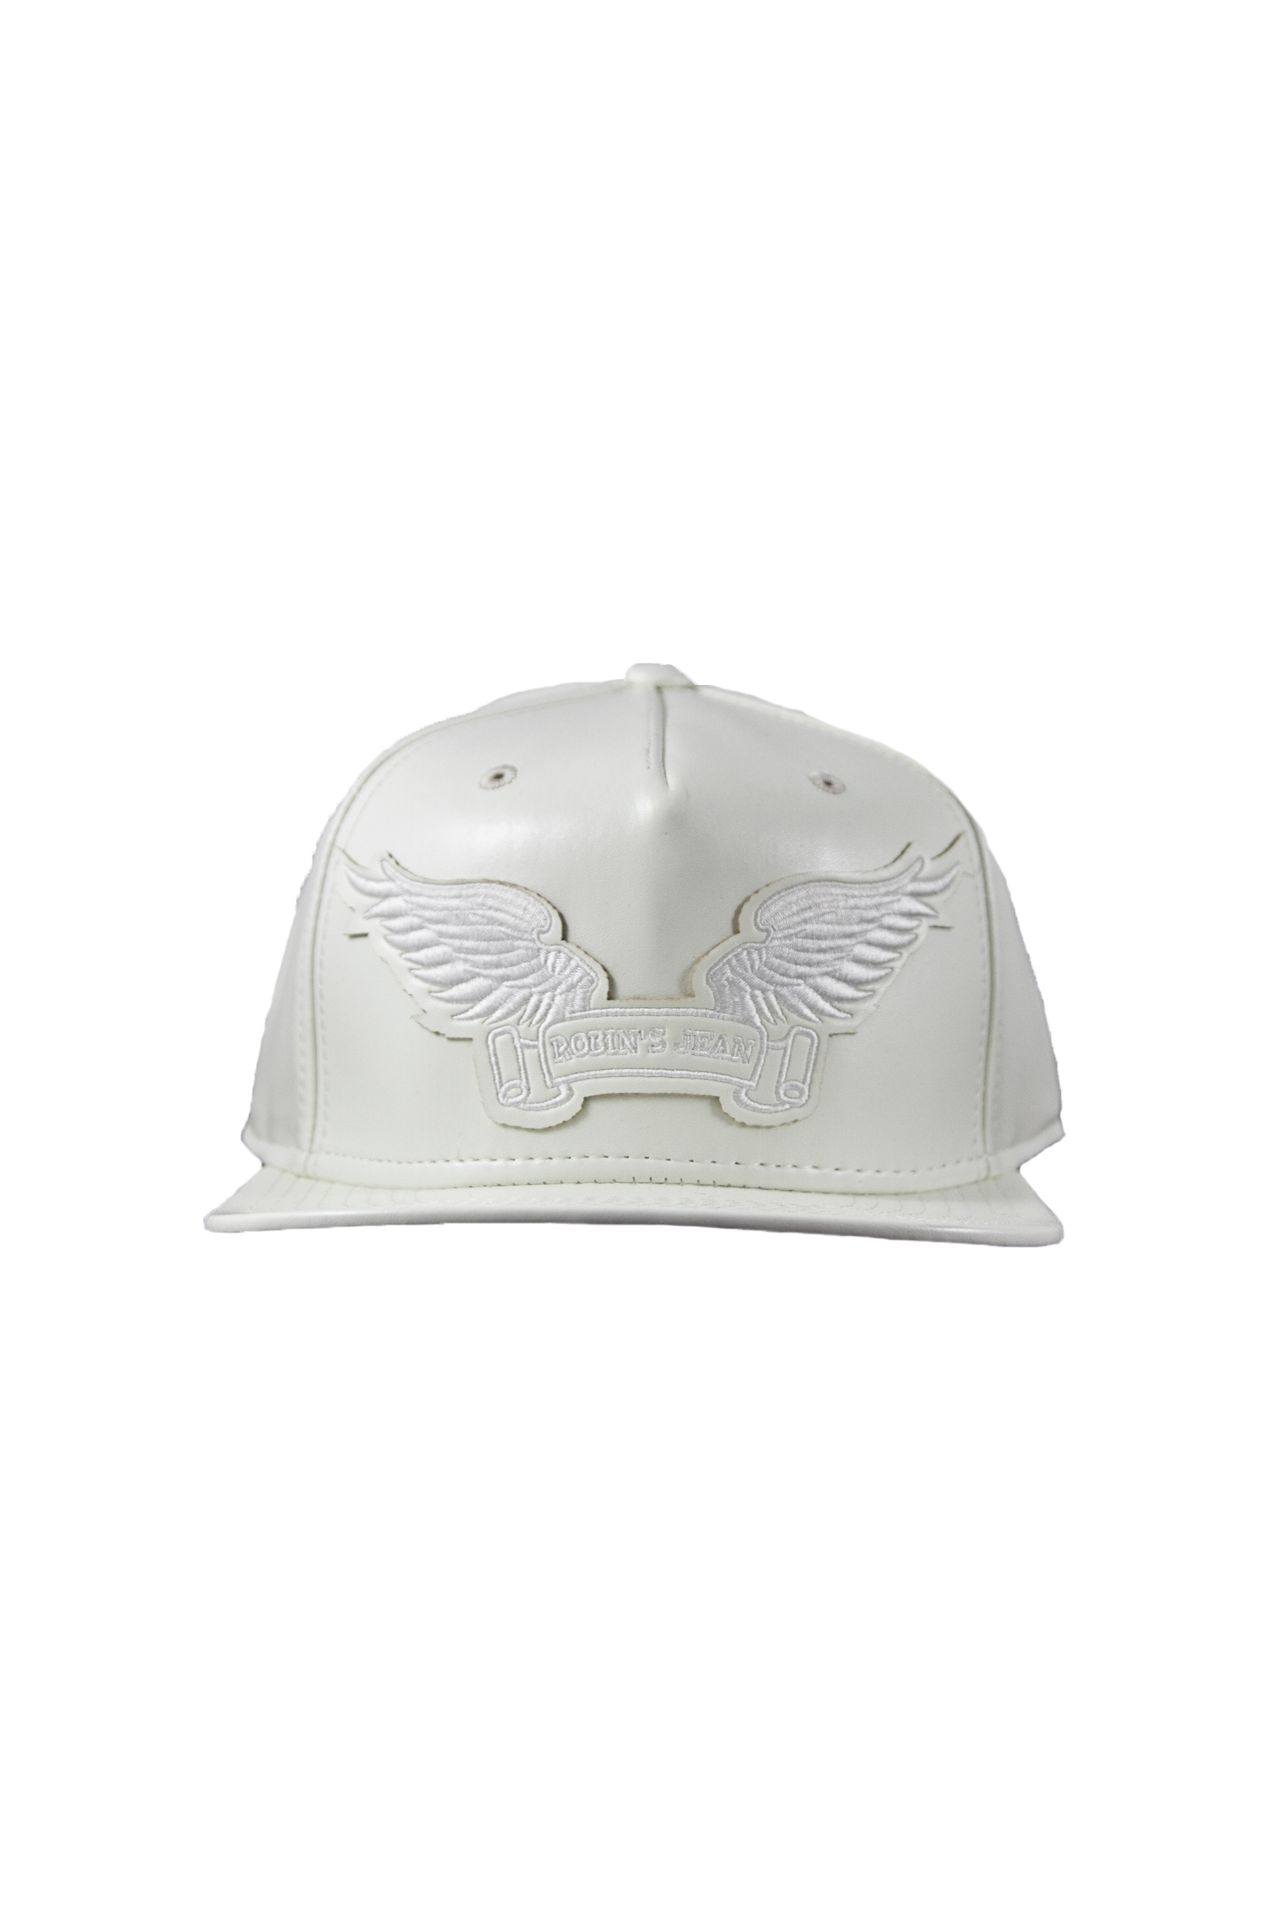 WHITE LEATHER LOOK CAP